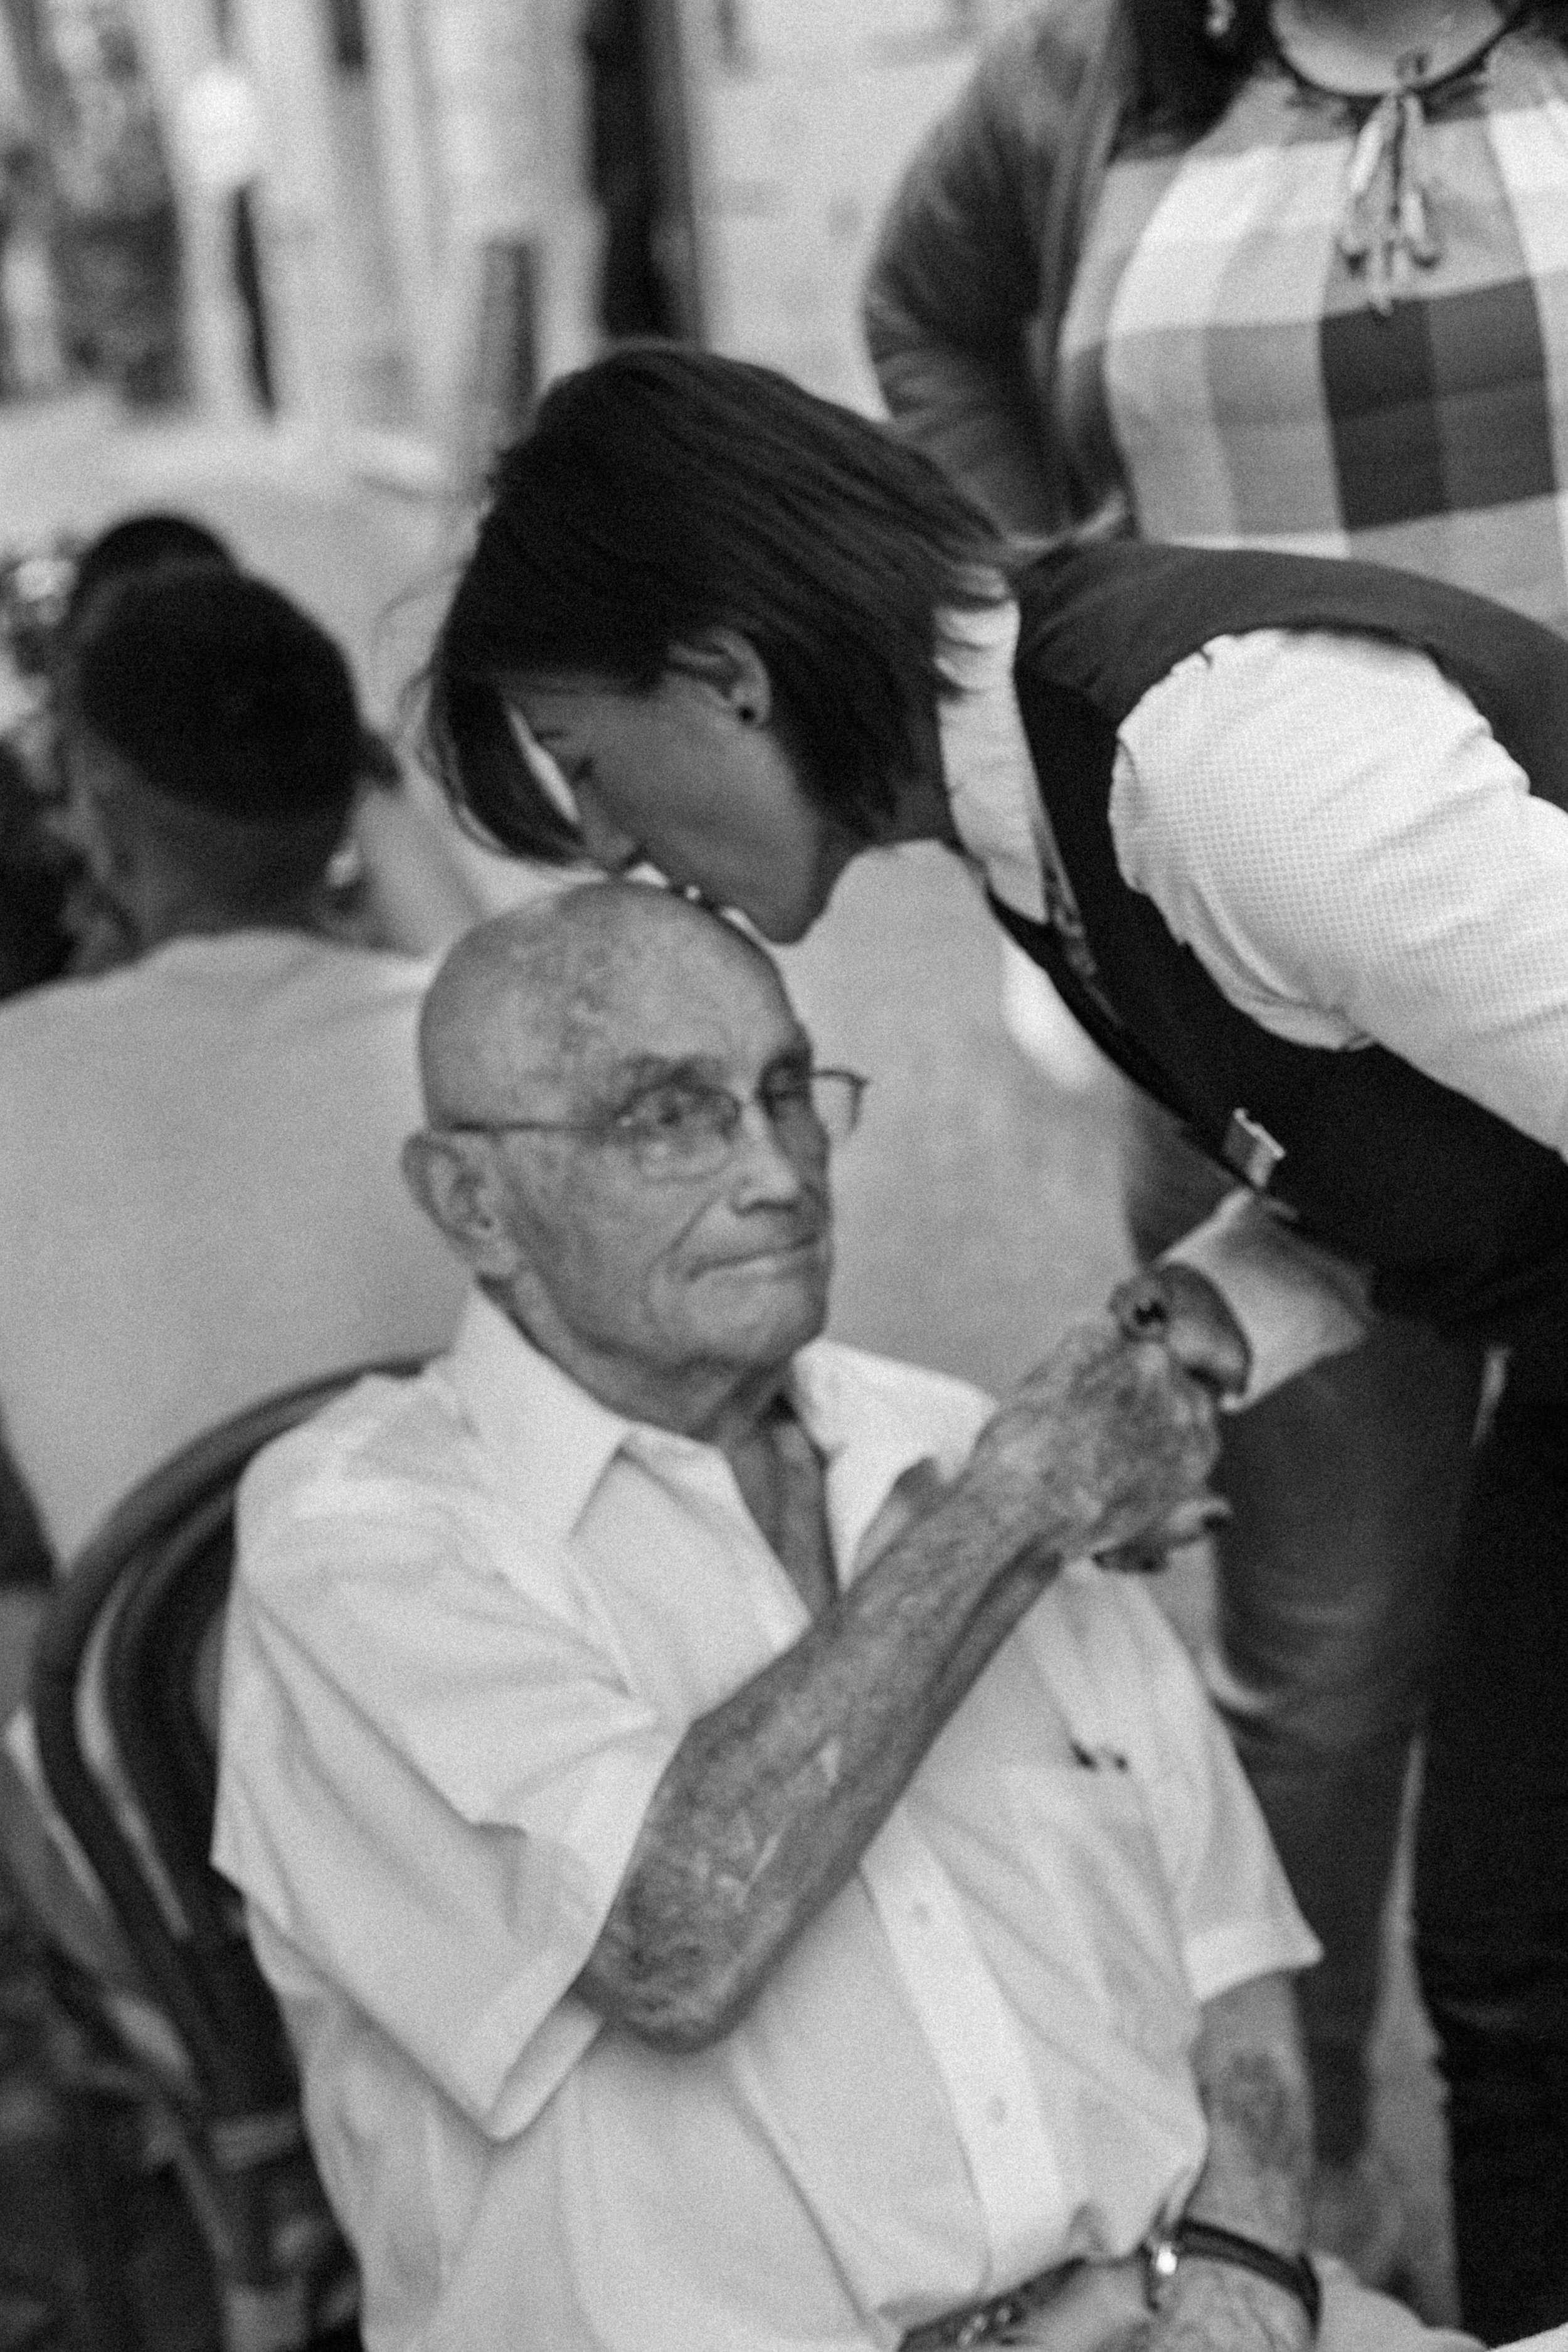 A waitress gives a 100 year old man a kiss on his head for his birthday